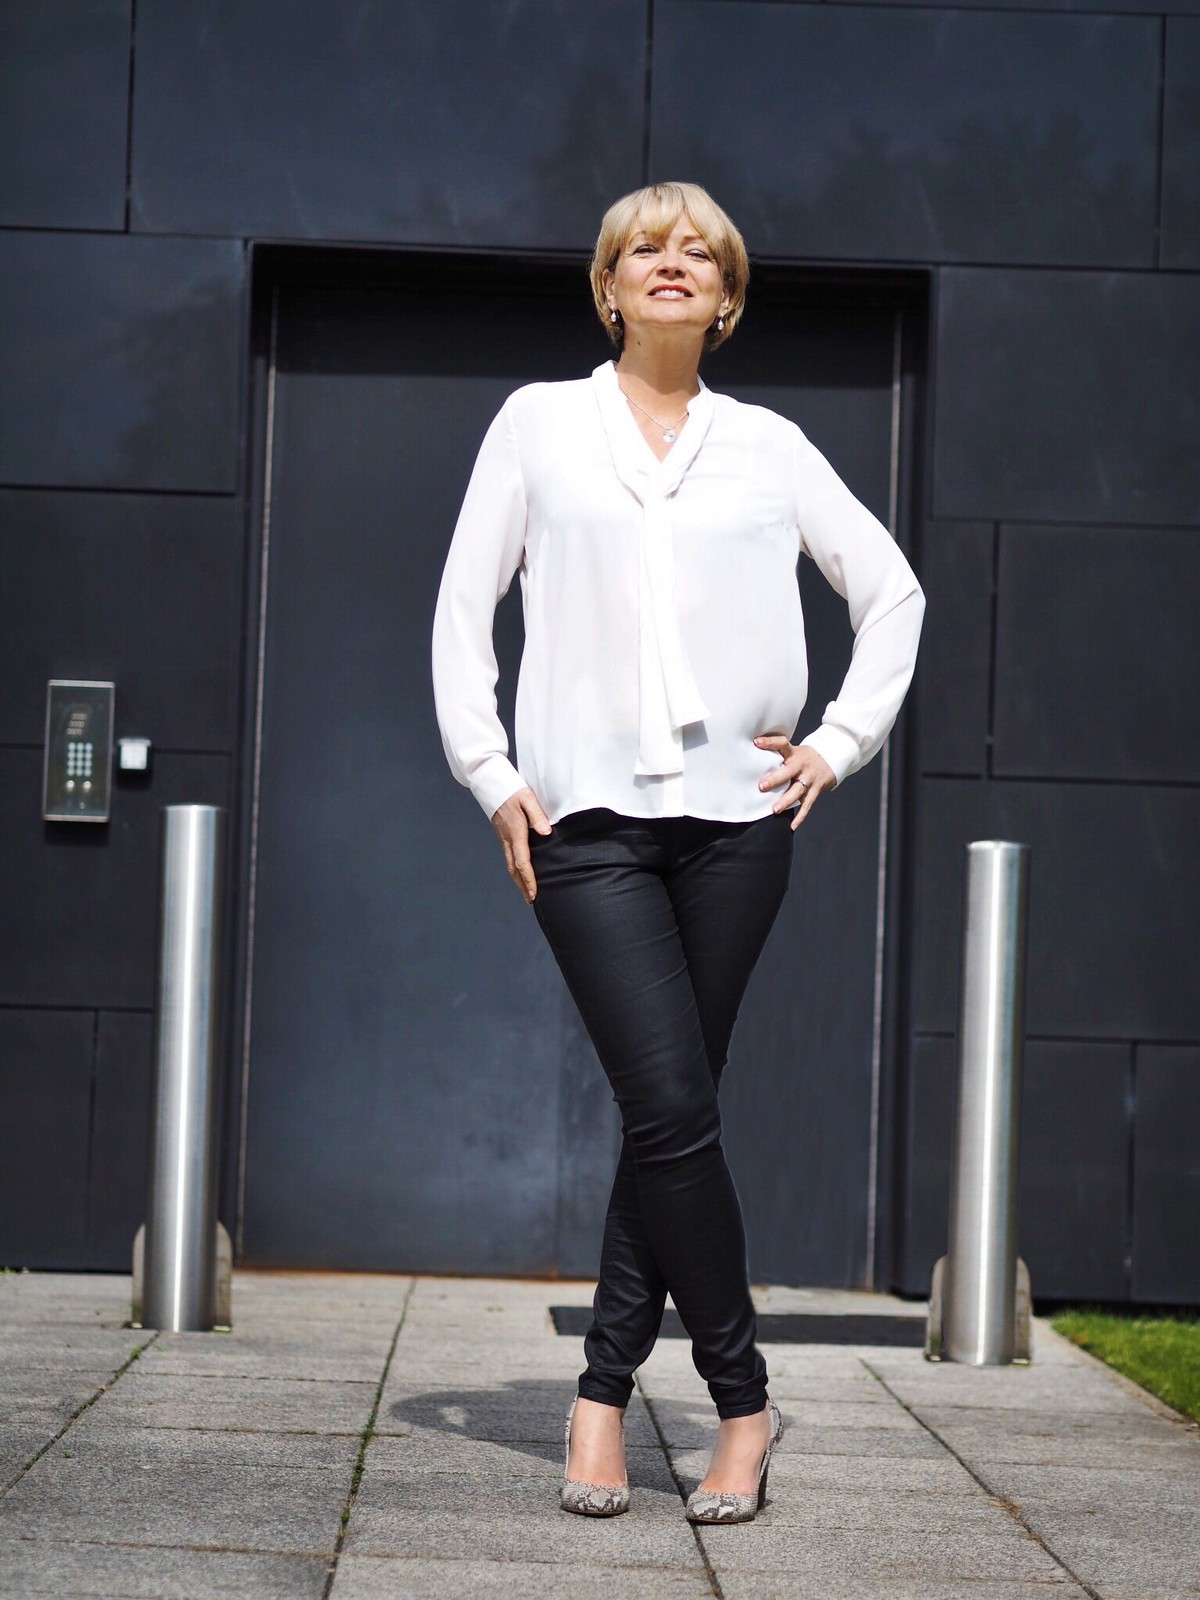 Styling a basic white top and denim: Marks & Spencer challenge - Nikki, Midlife Chic